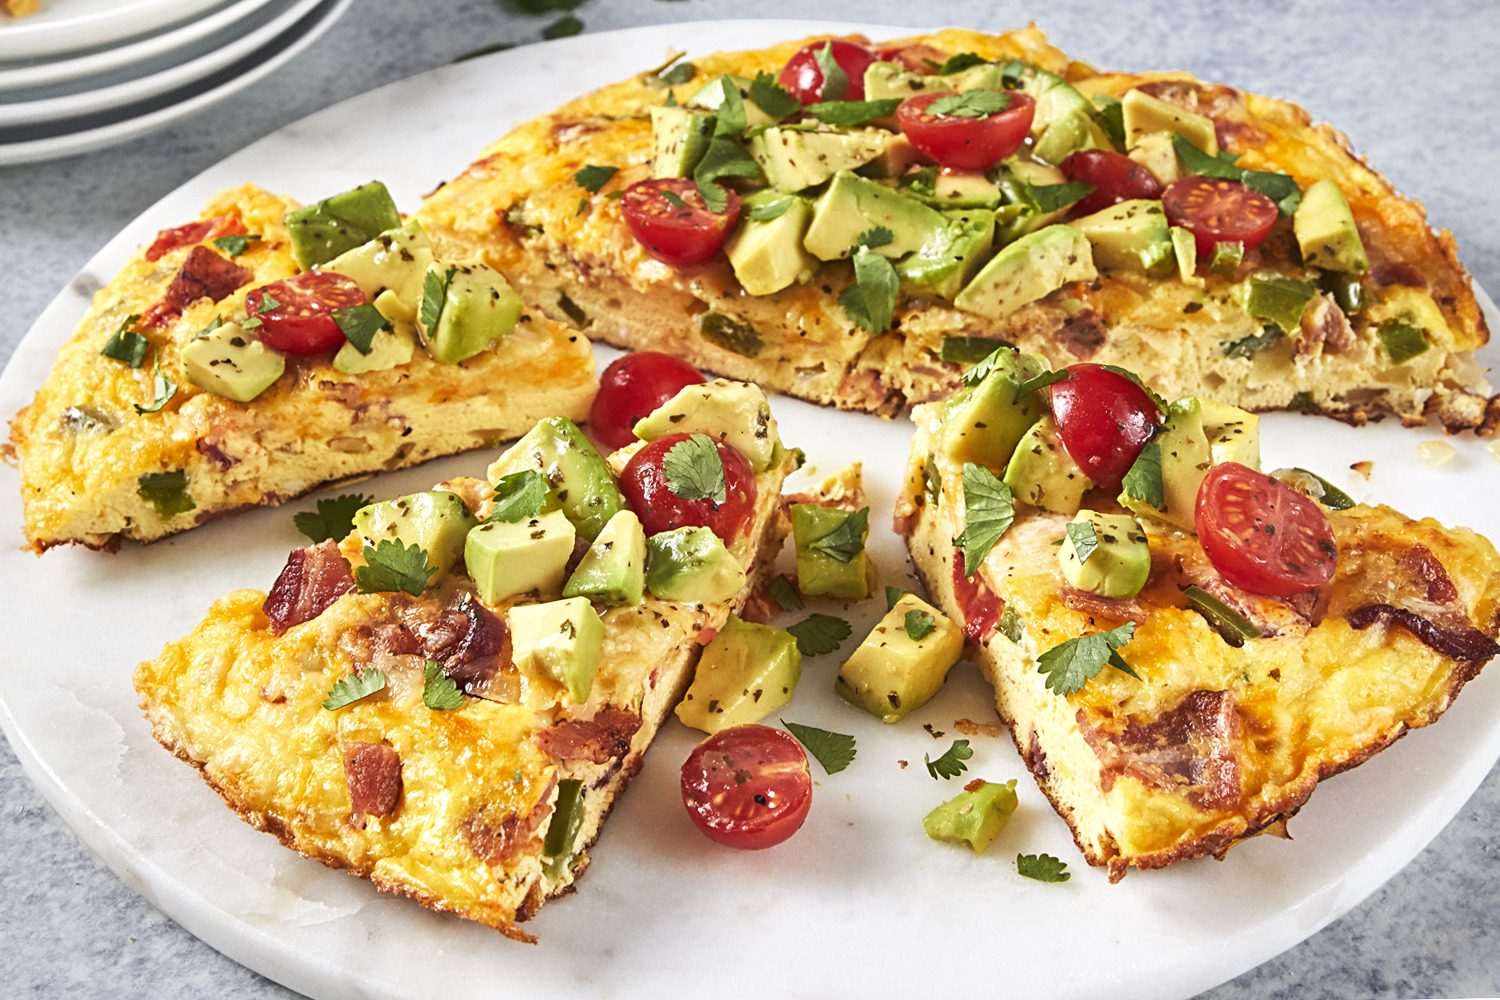 Summer Vegetable Frittata with Bacon Image 1